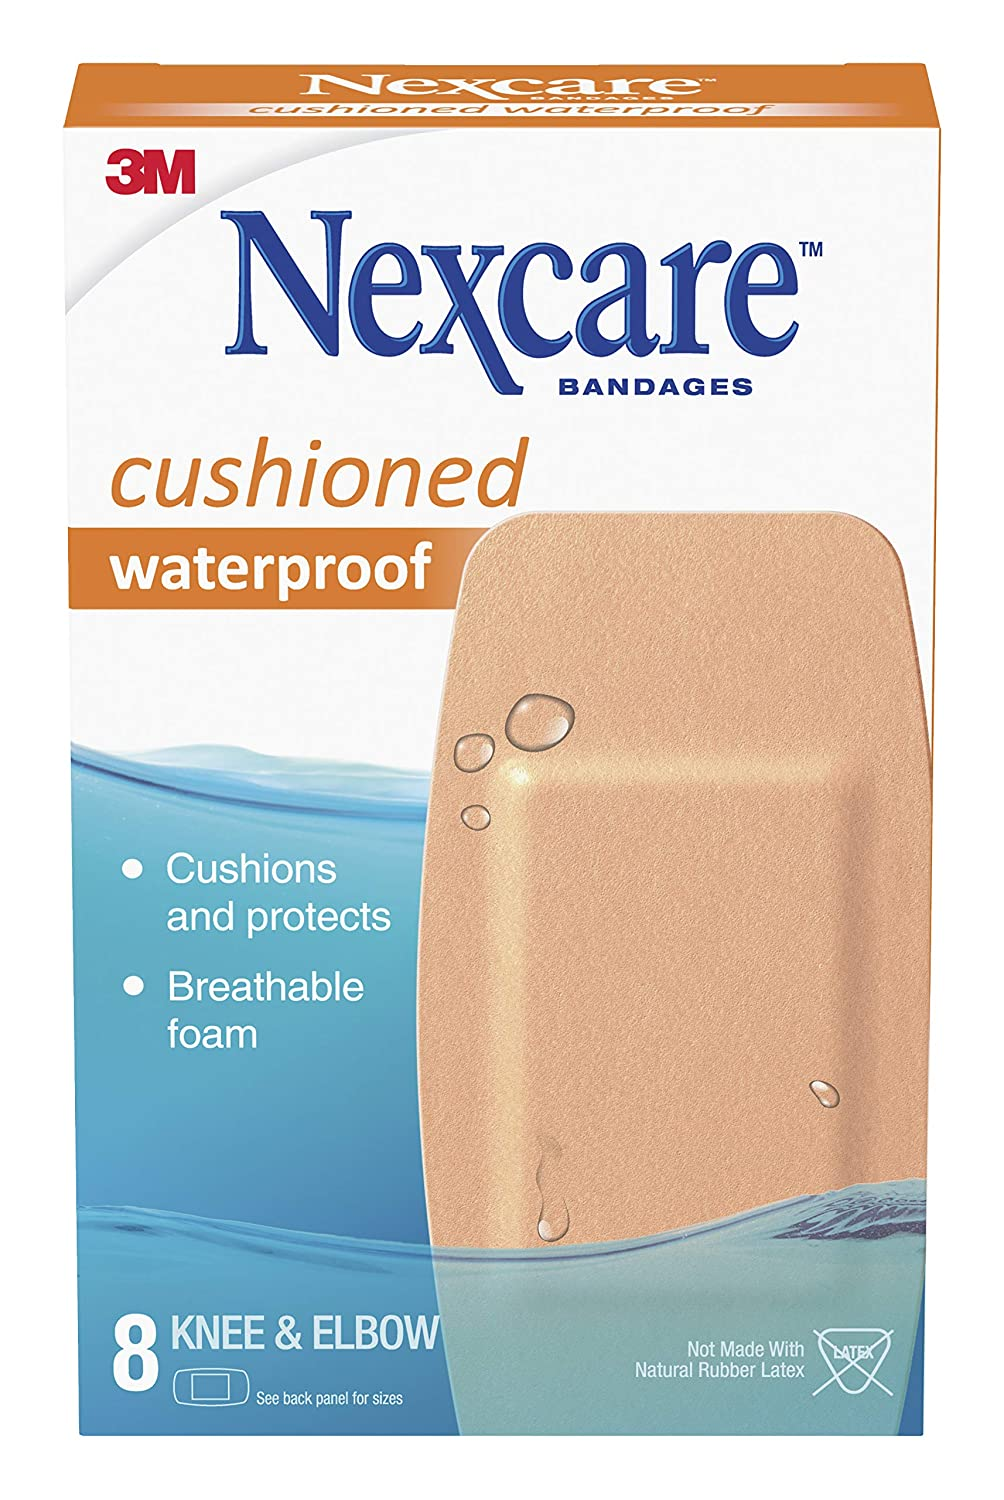 Nexcare Cushioned Waterproof Foam Bandage, Knee and Elbow, 8 Count